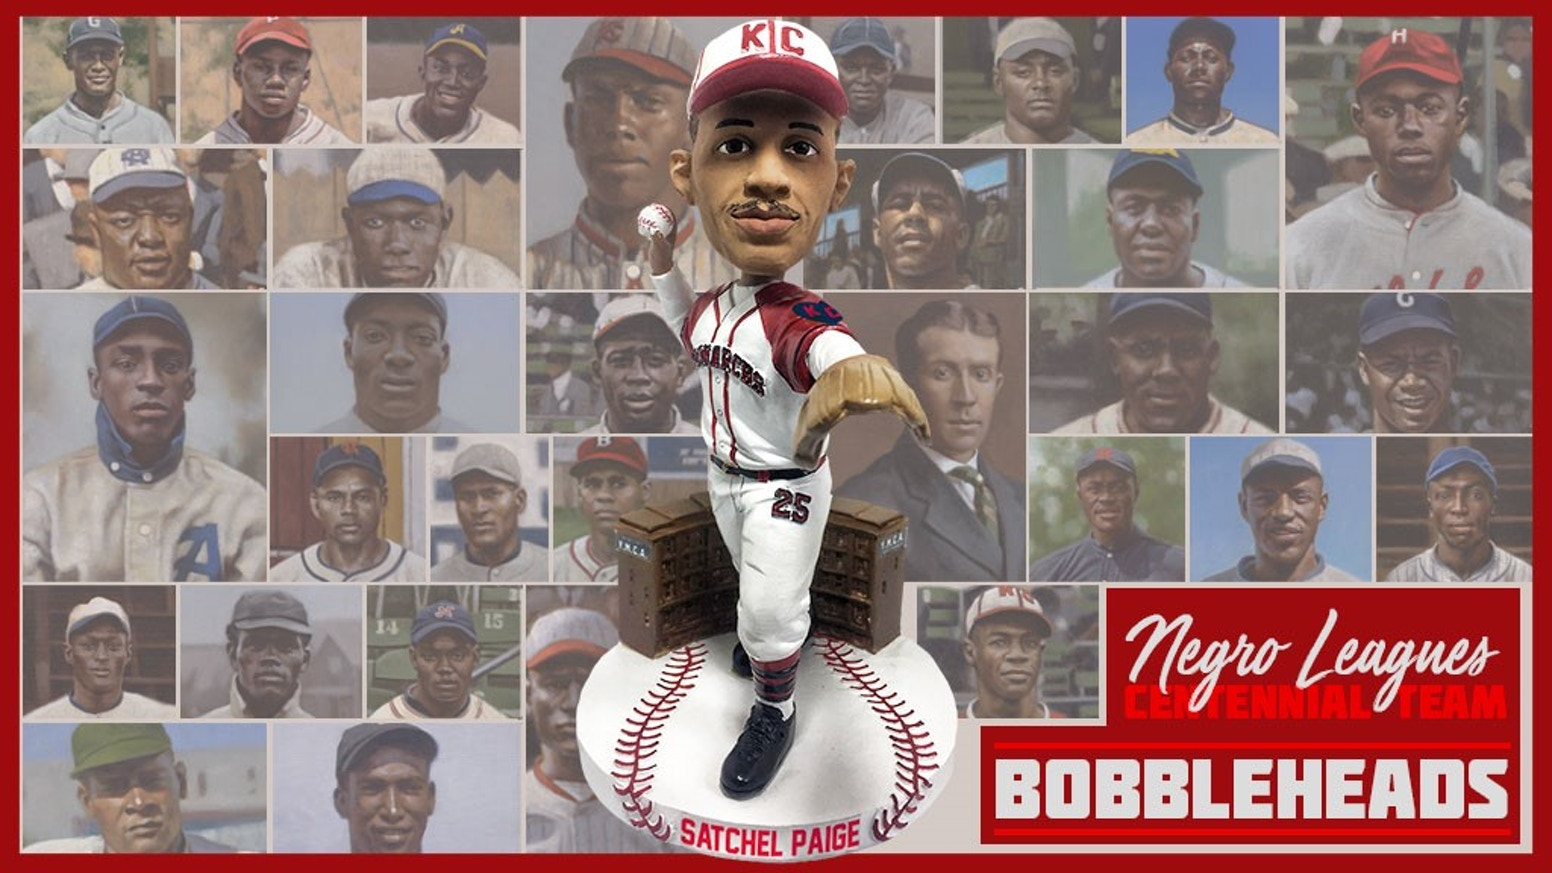 Celebrating the Negro Leagues and its players through bobbleheads that will educate and inspire generations to come.